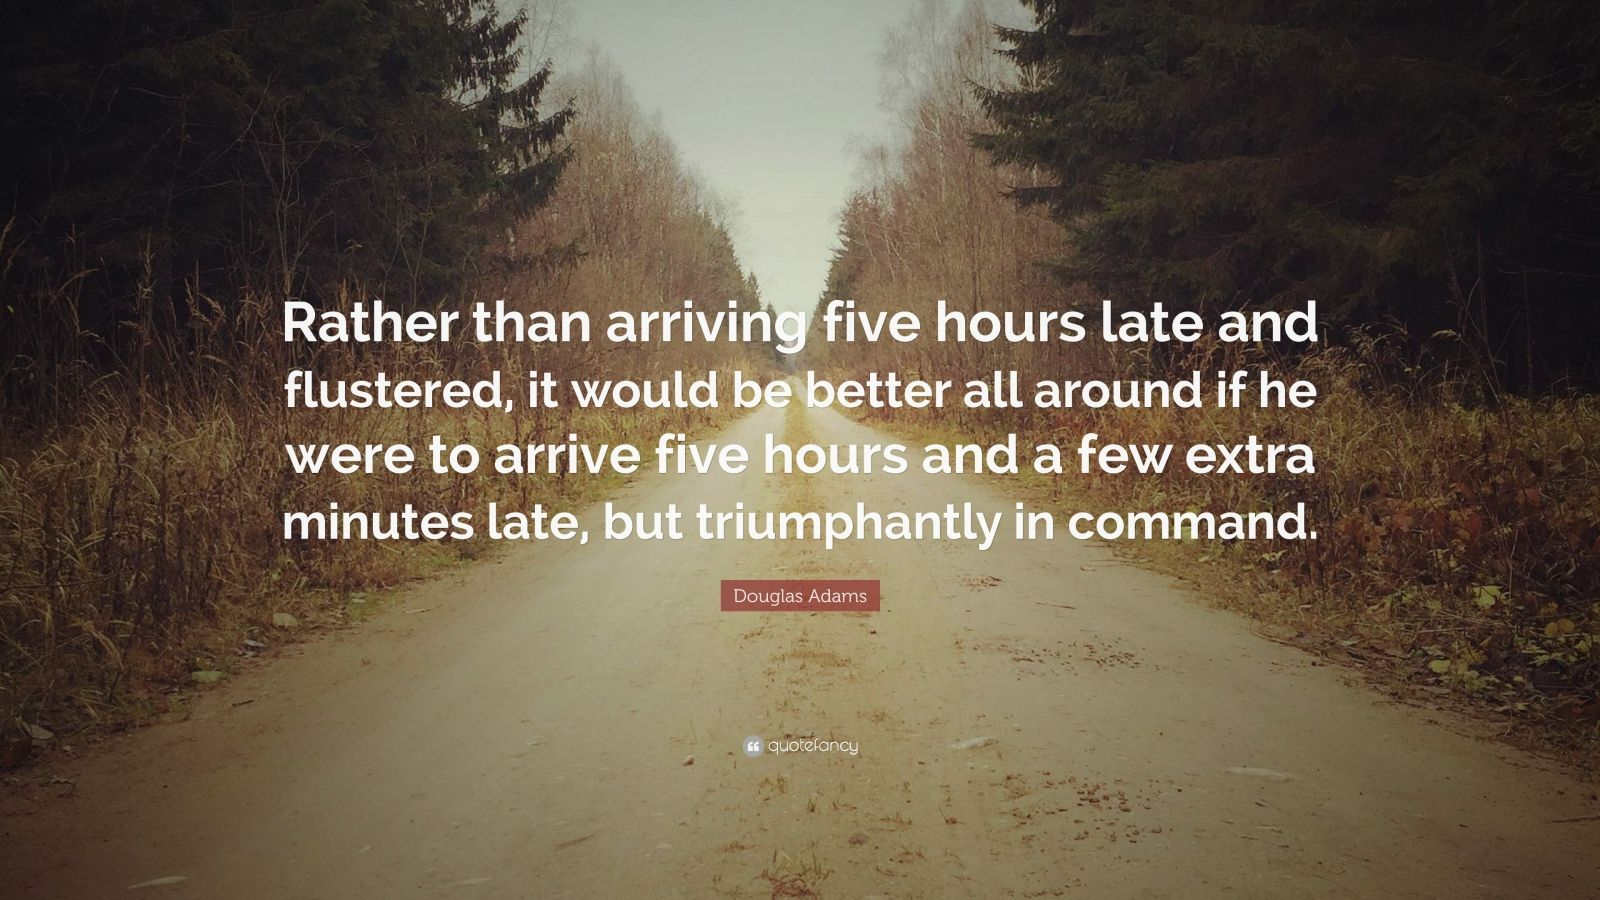 """Douglas Adams Quote: """"Rather than arriving five hours late and flustered, it would be better all around if he were to arrive five hours and a few extra minutes late, but triumphantly in command."""""""